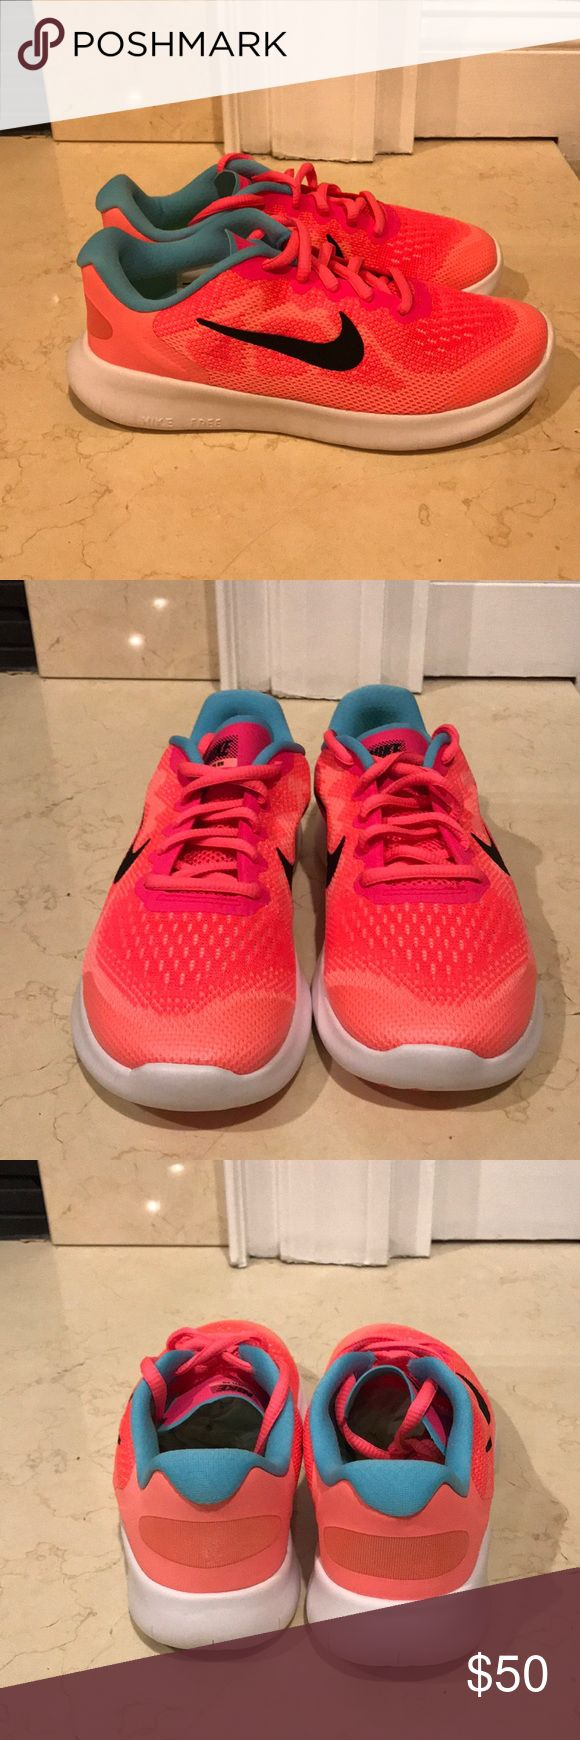 NIB Nike kids free RN 2017 (ps) sz 2y New in box Nike kids free RN 2017 (ps) size 2Y. Synthetic and mesh. Rubber sole. Breathable single layer mesh. Padded tongue and collar. Nike Shoes Sneakers